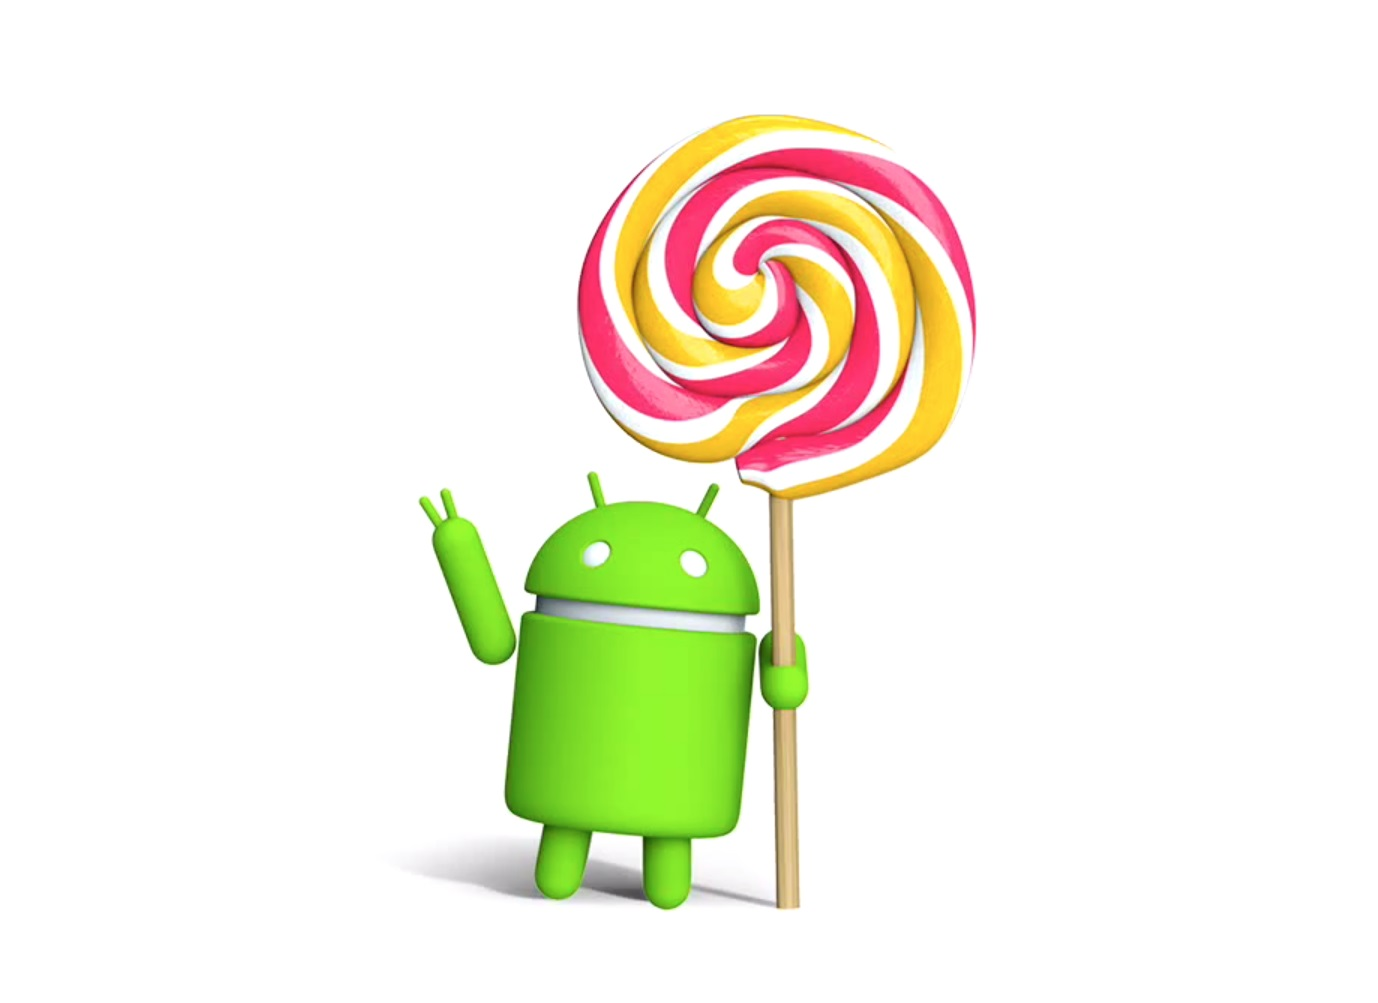 Download android 5 0 lollipop ota update zip files for all supported